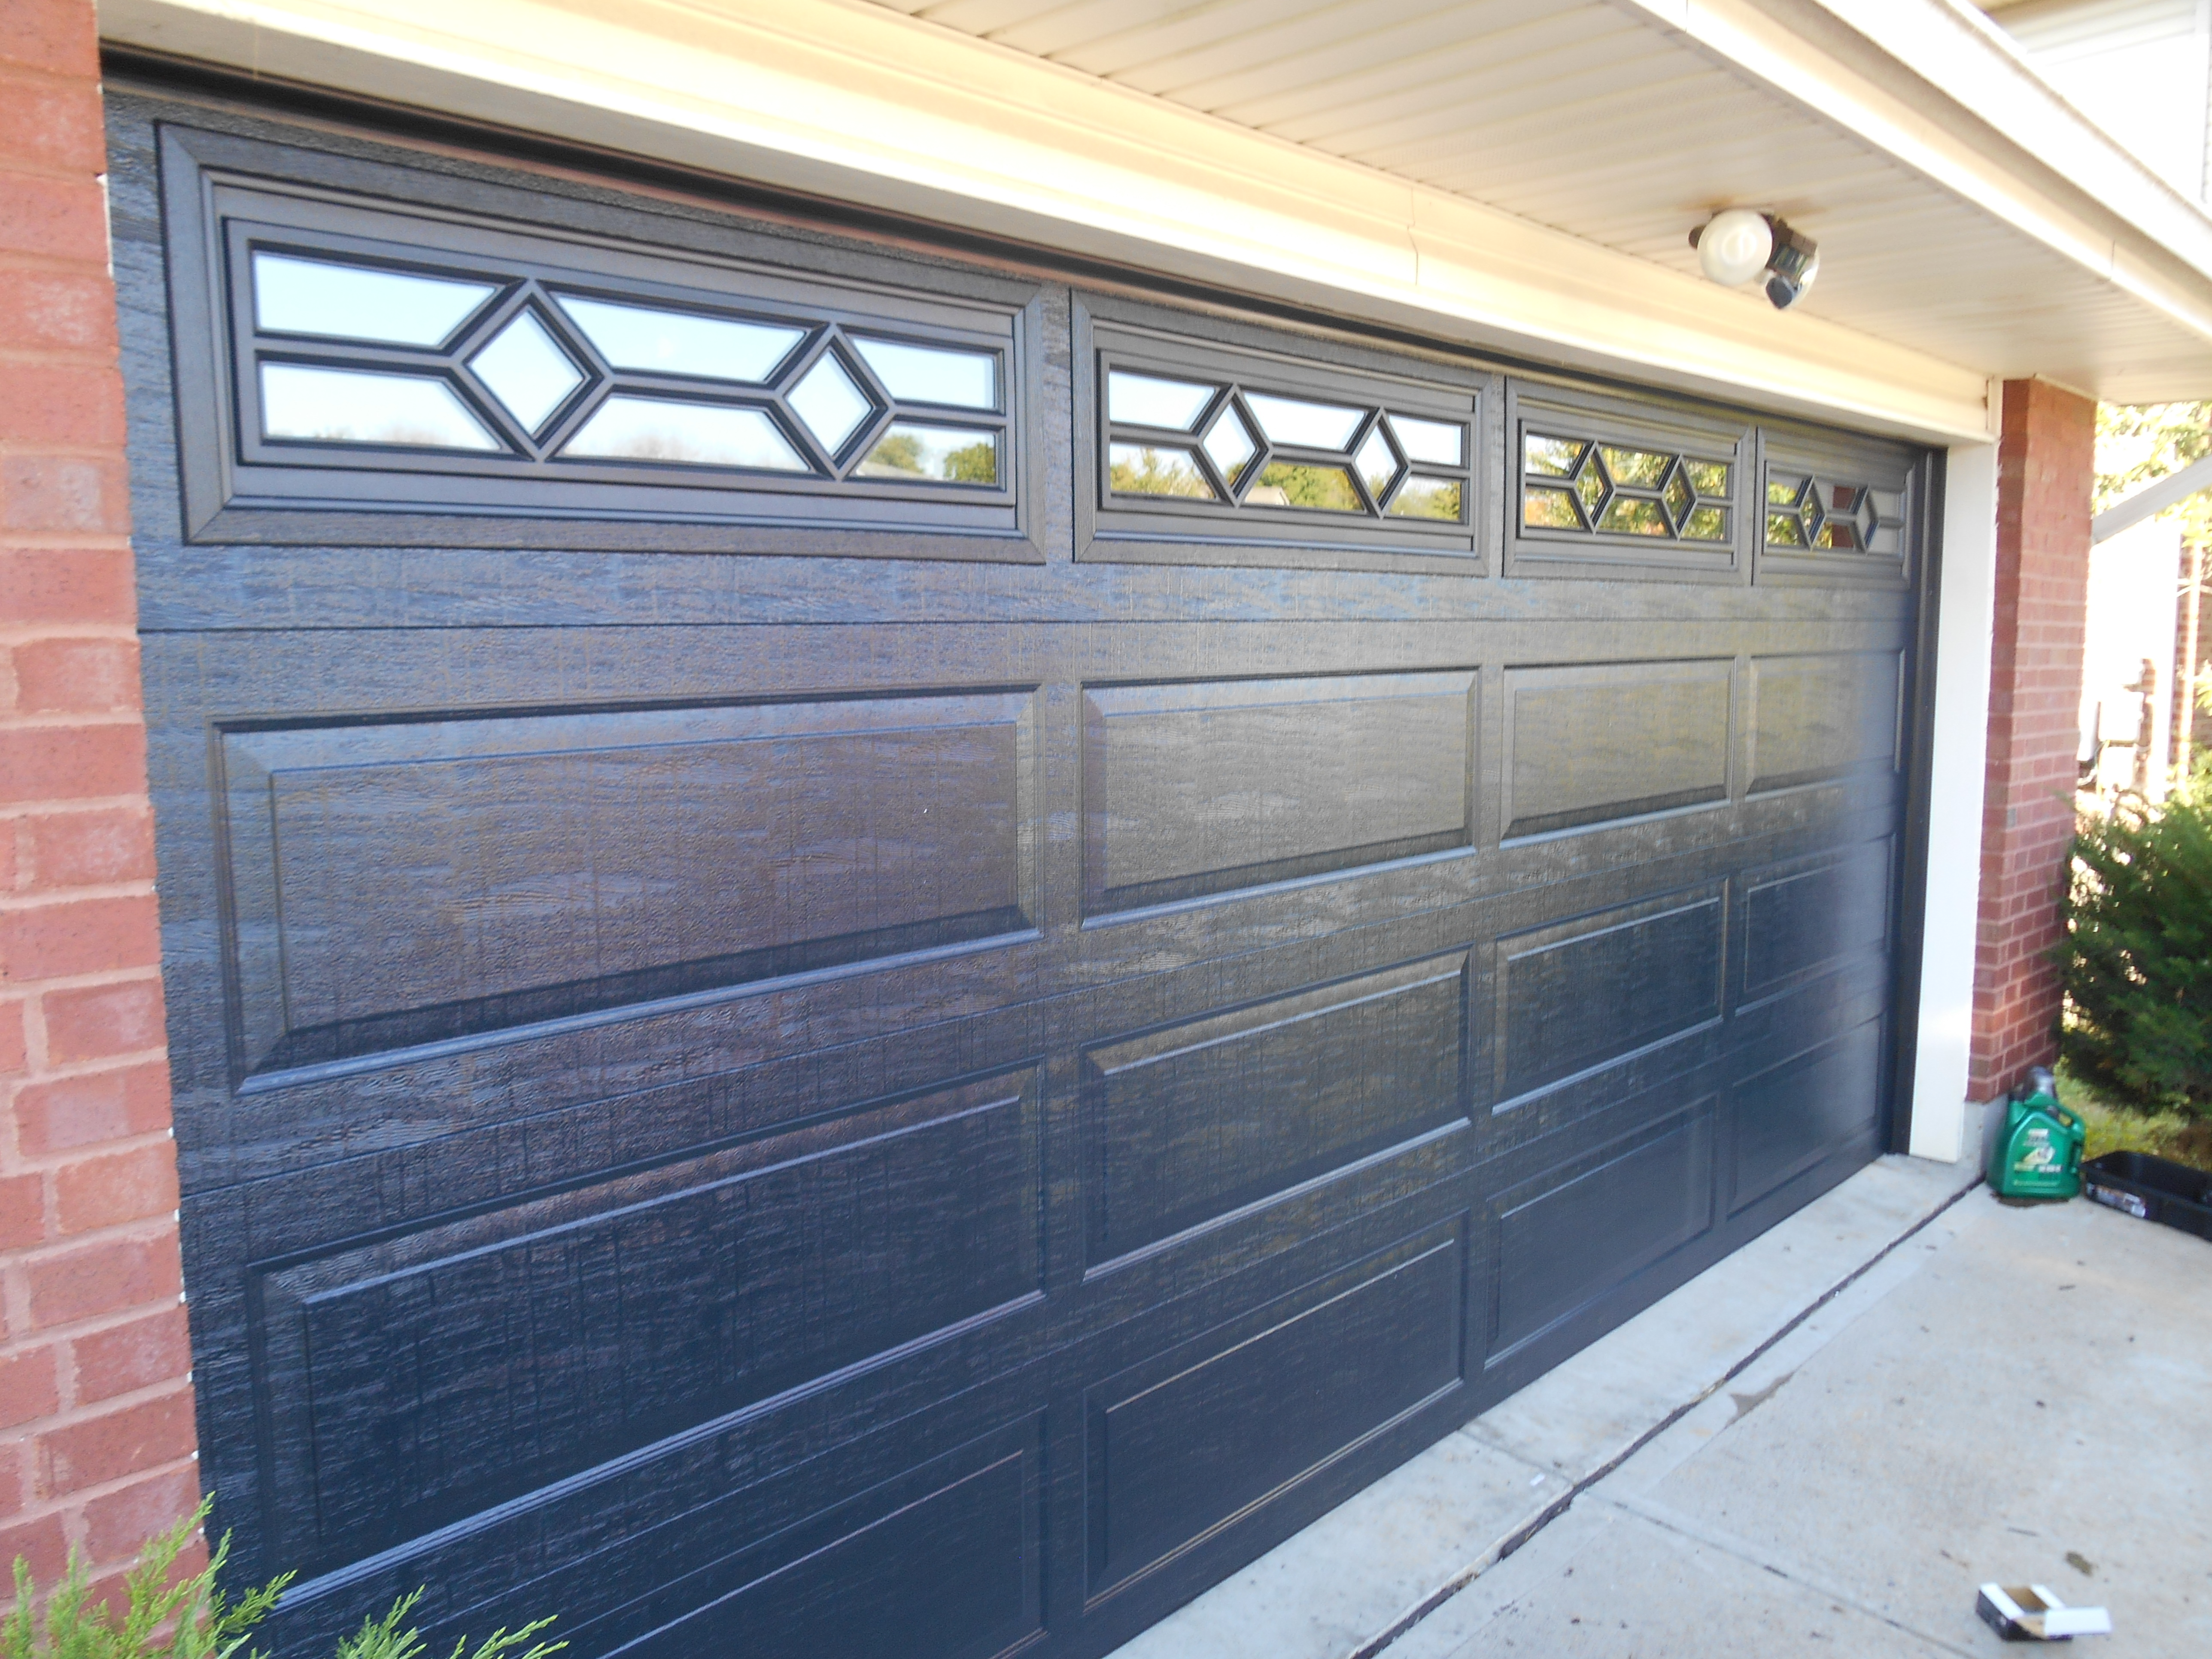 Thermacore 198 series with waterton II window trim. Color: Black